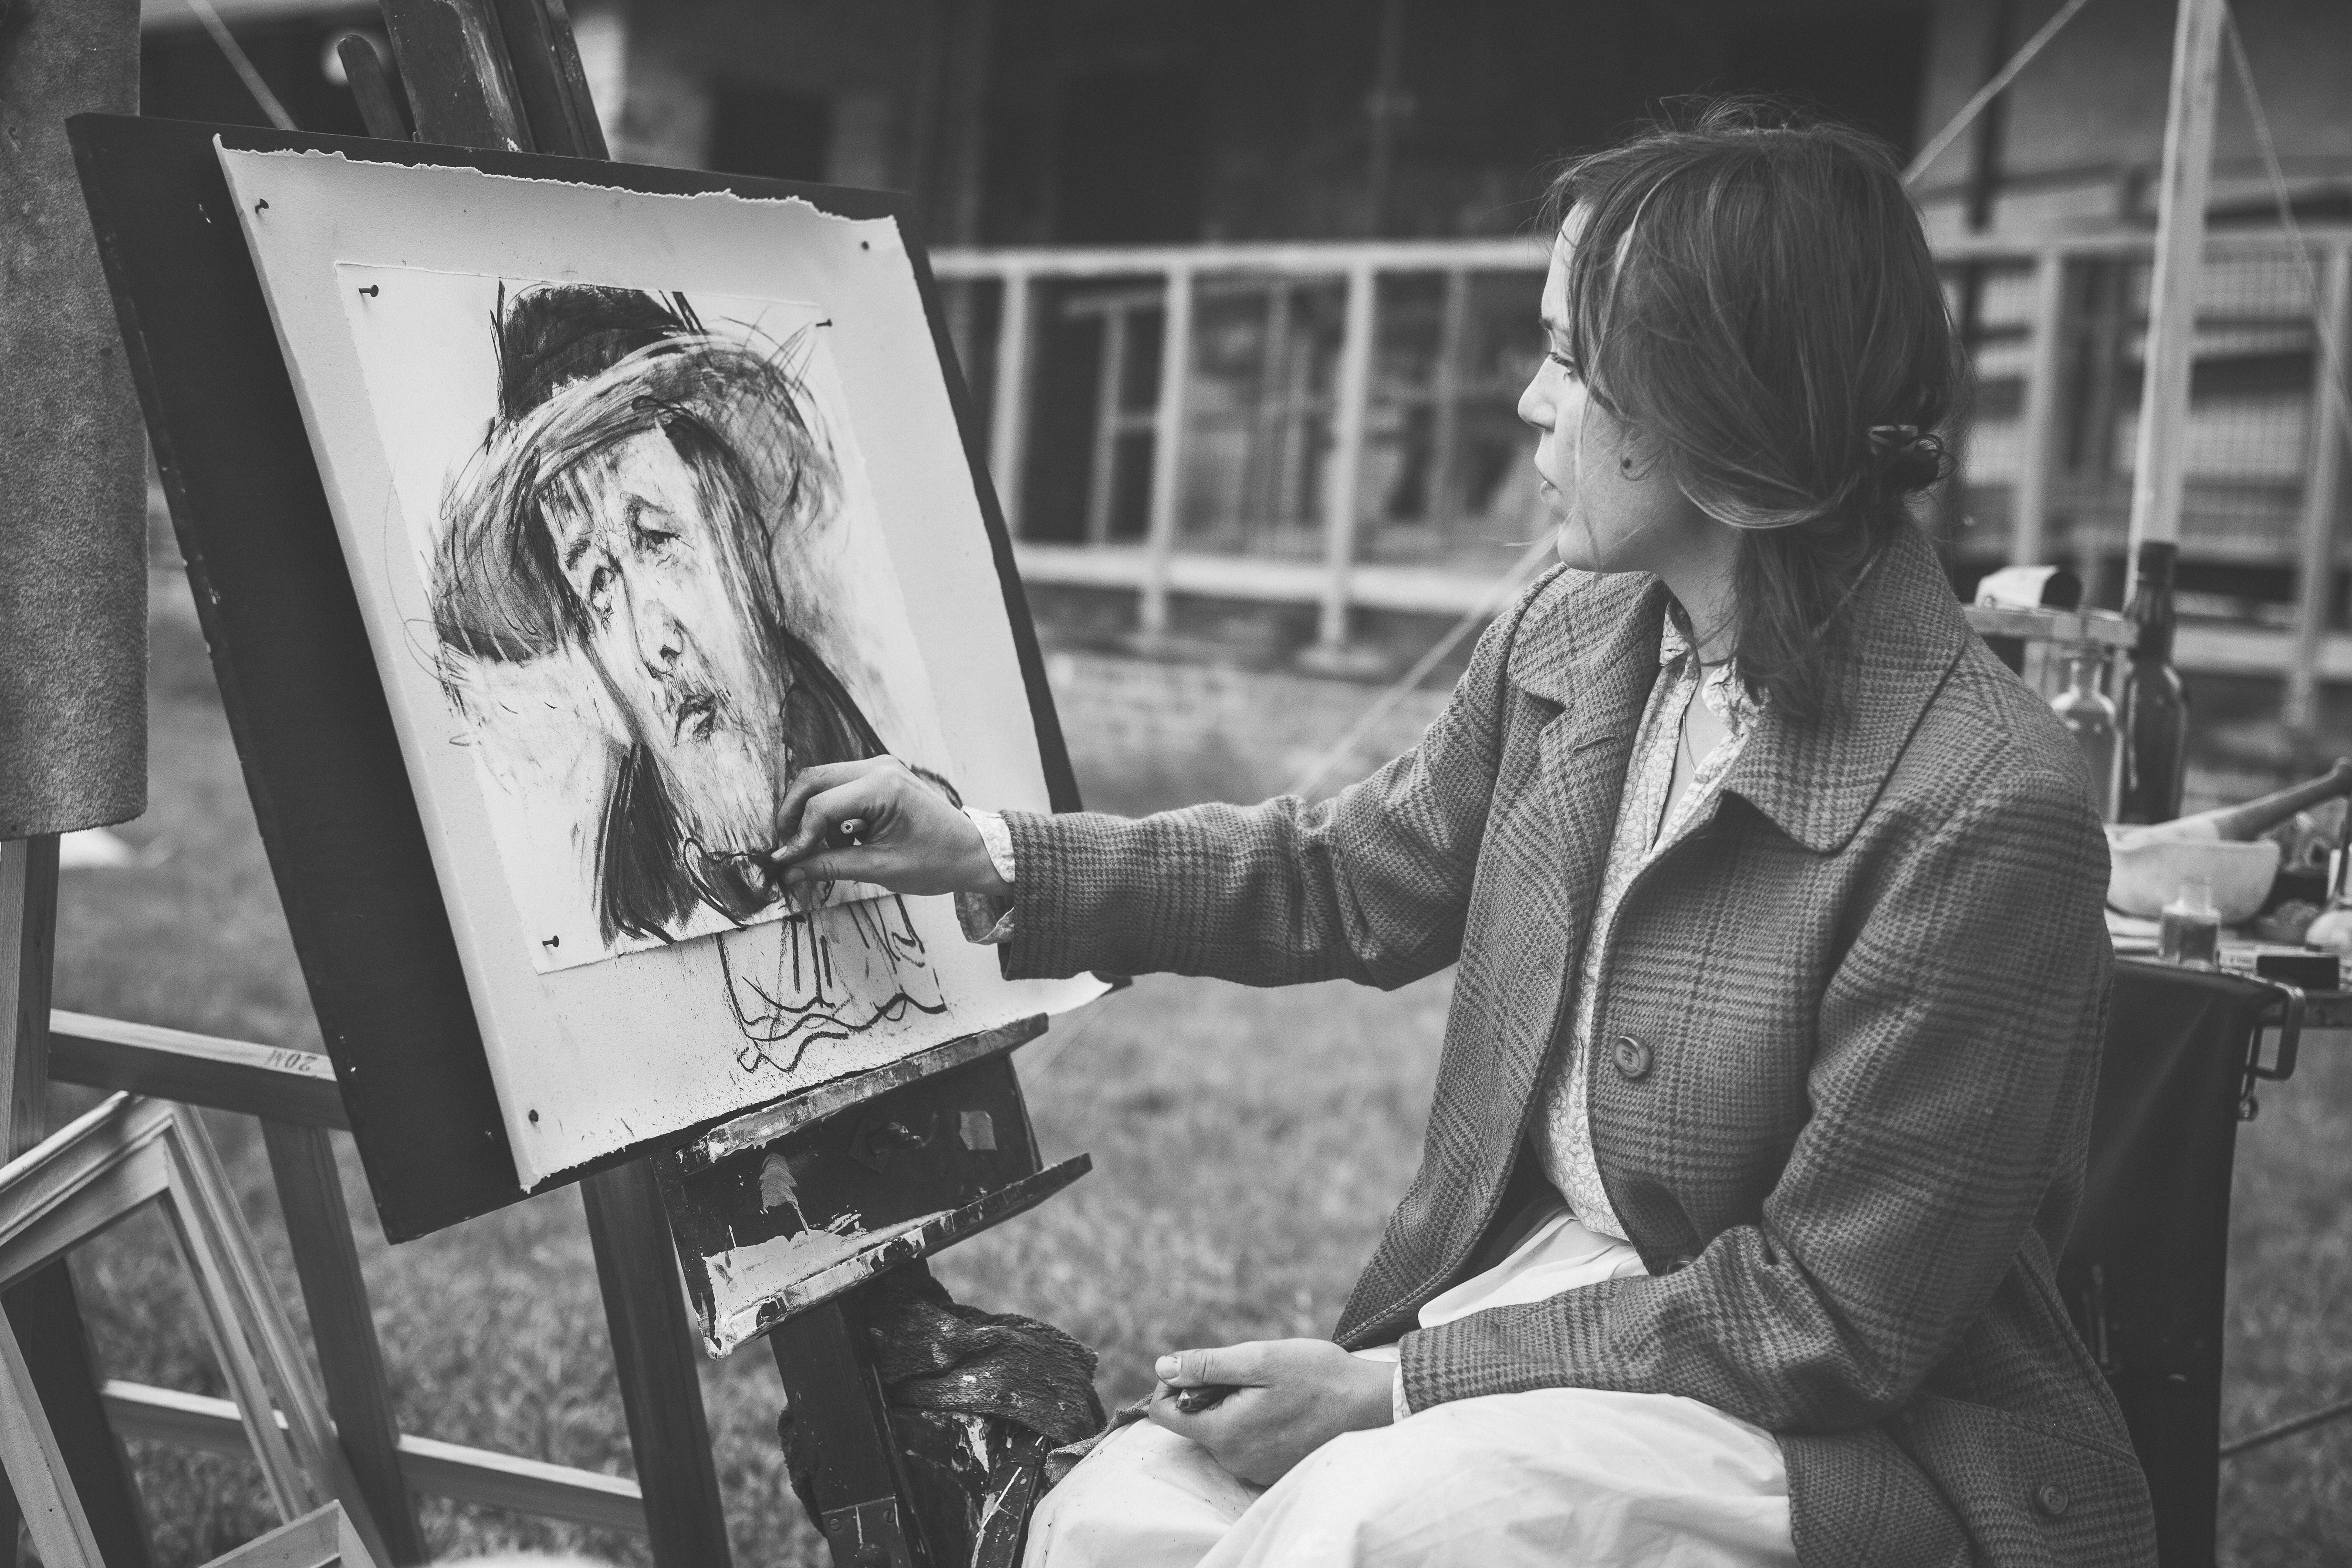 Woman drawing a man with hat photo